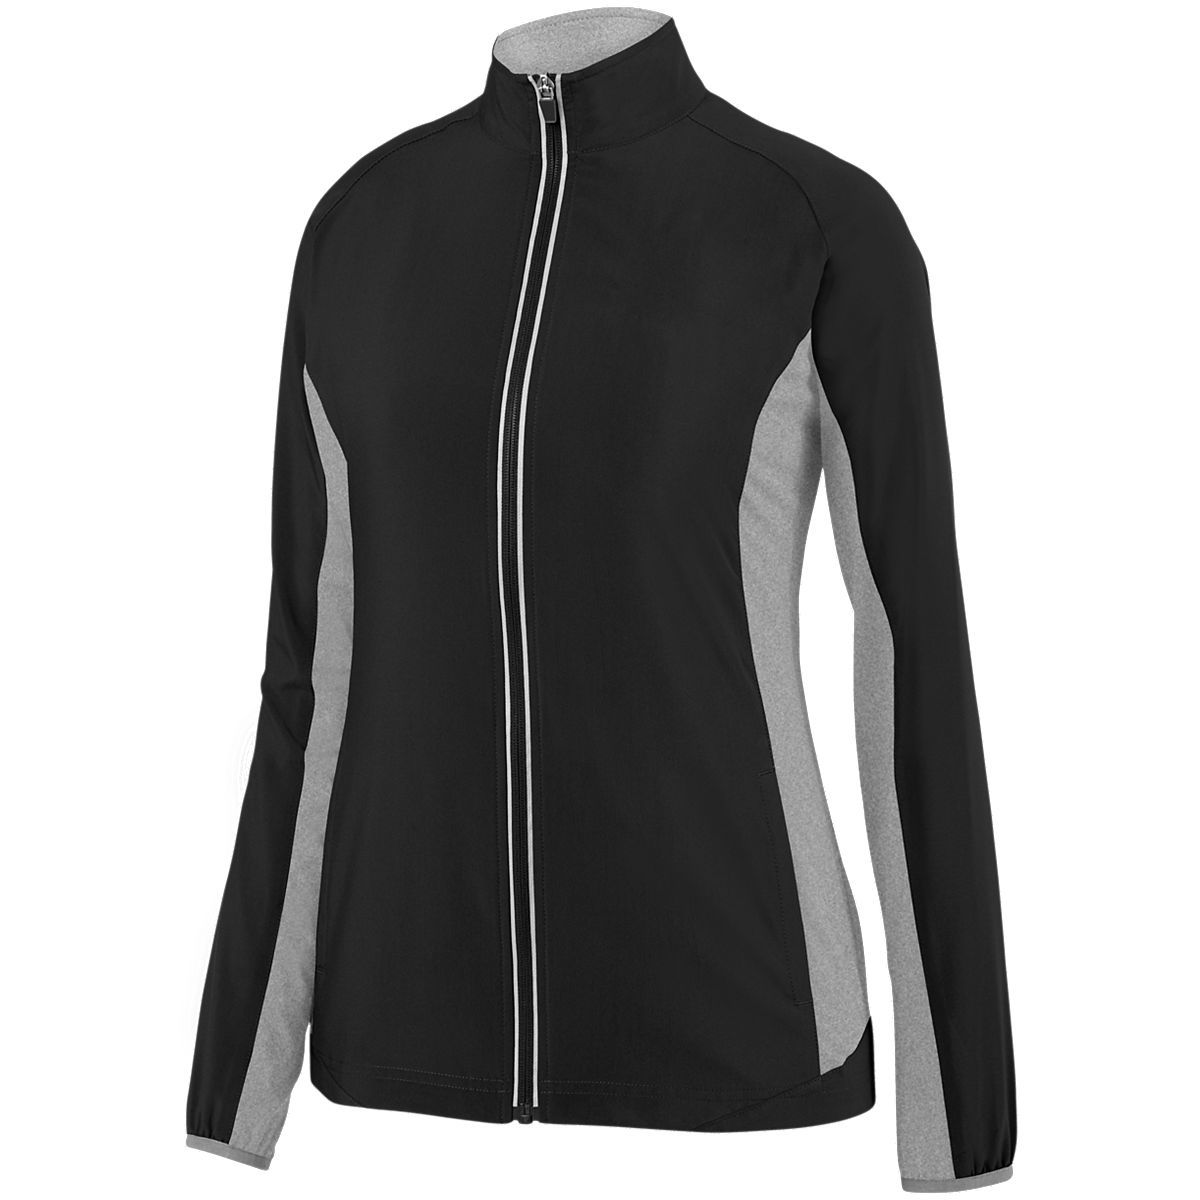 Ladies Preeminent Jacket - BLACK/GRAPHITE HEATHER